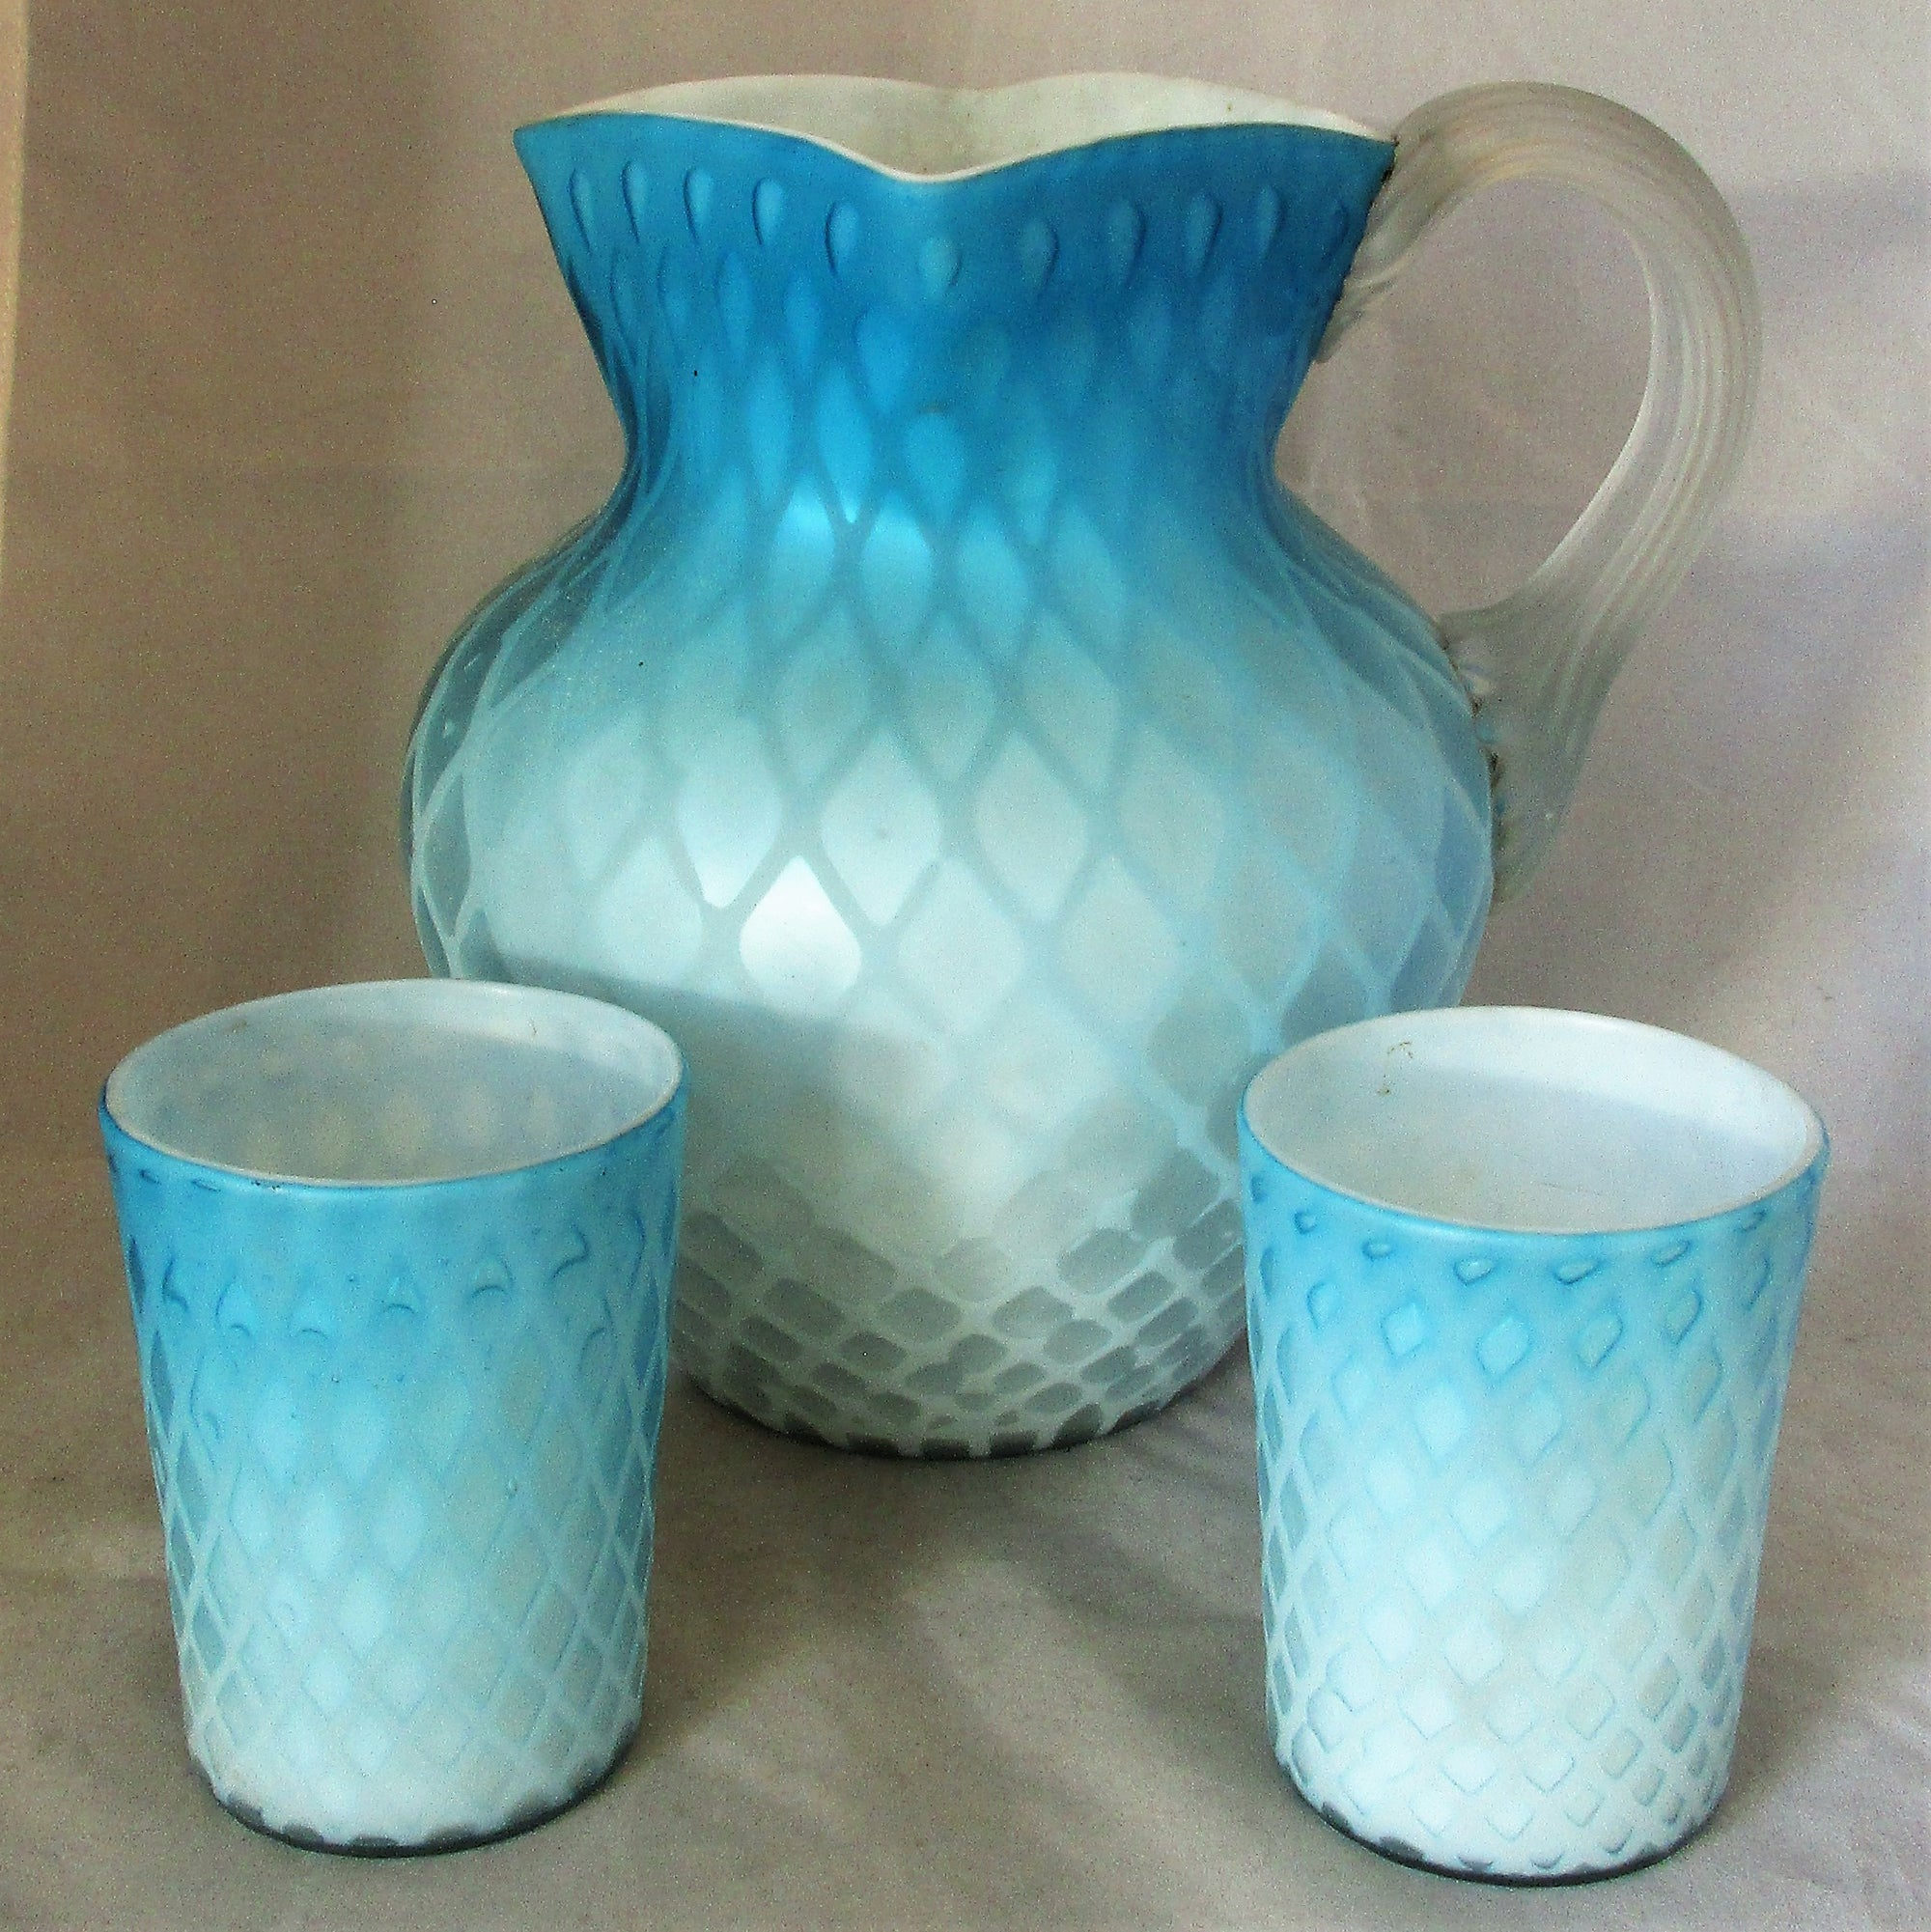 Large Satin Glass Jug and Two Tumblers Antique c1900.